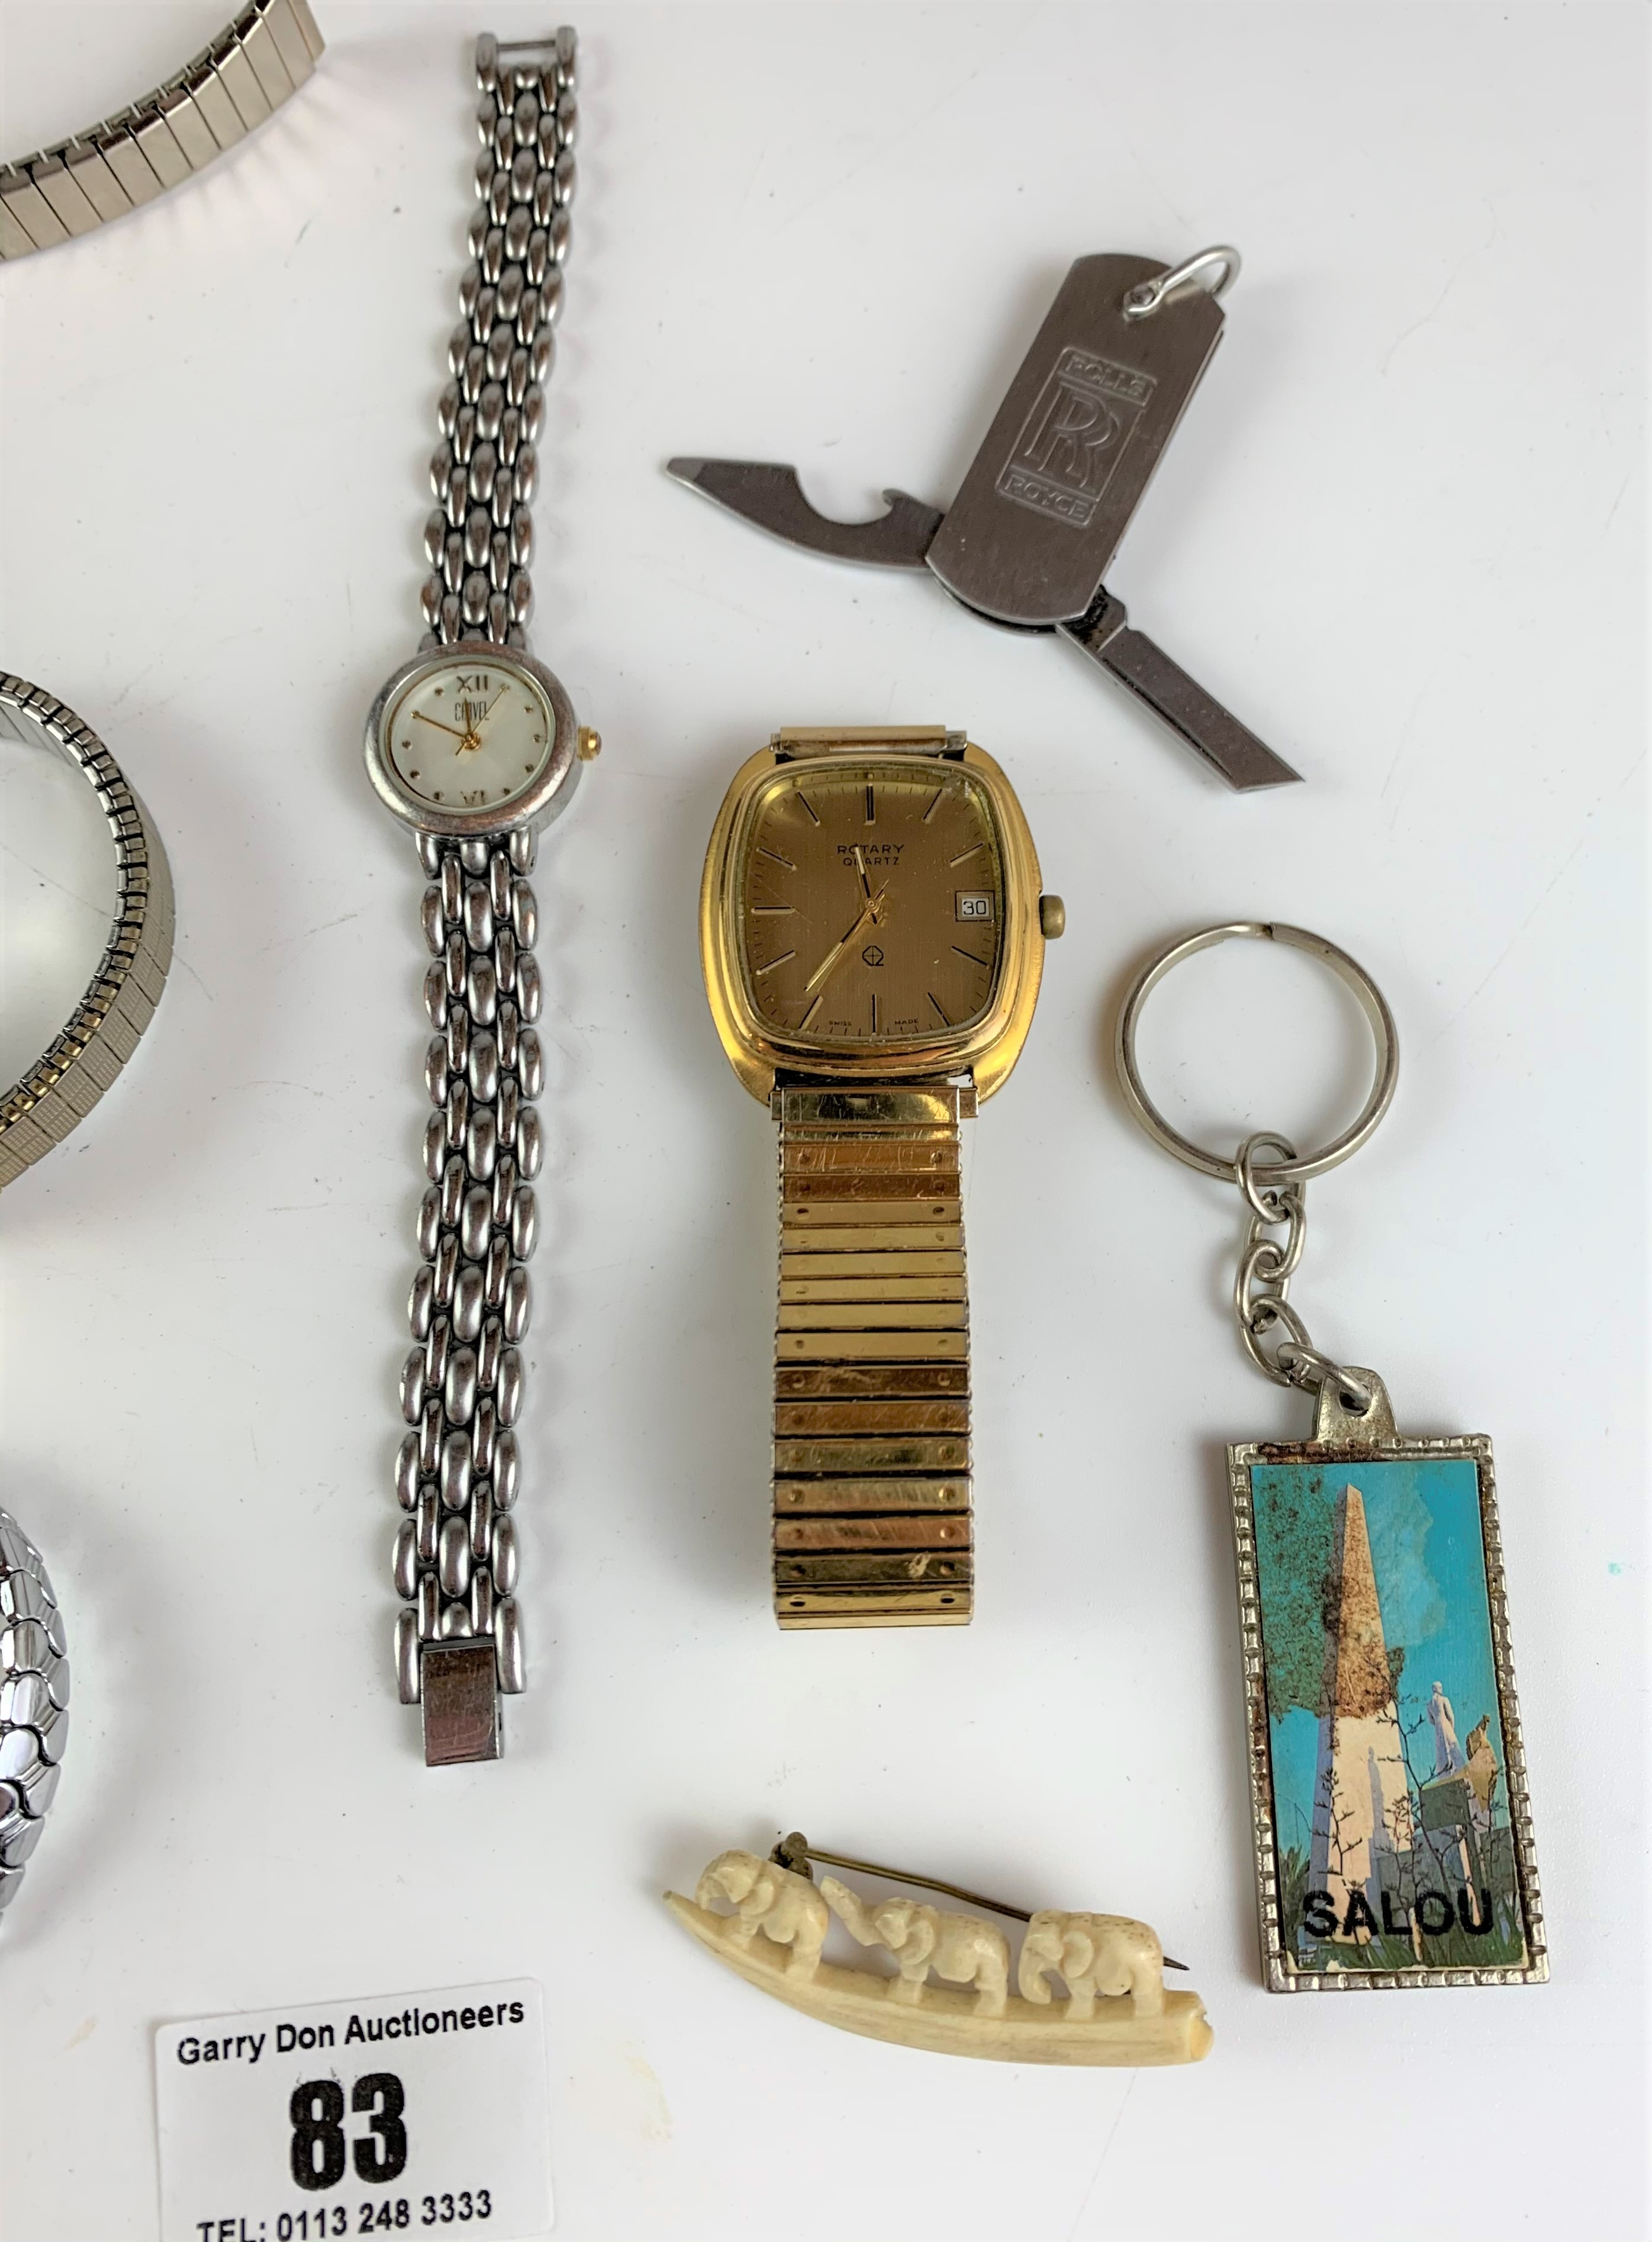 Bag of assorted dress watches, necklaces, keyrings and wooden mouse - Image 4 of 7